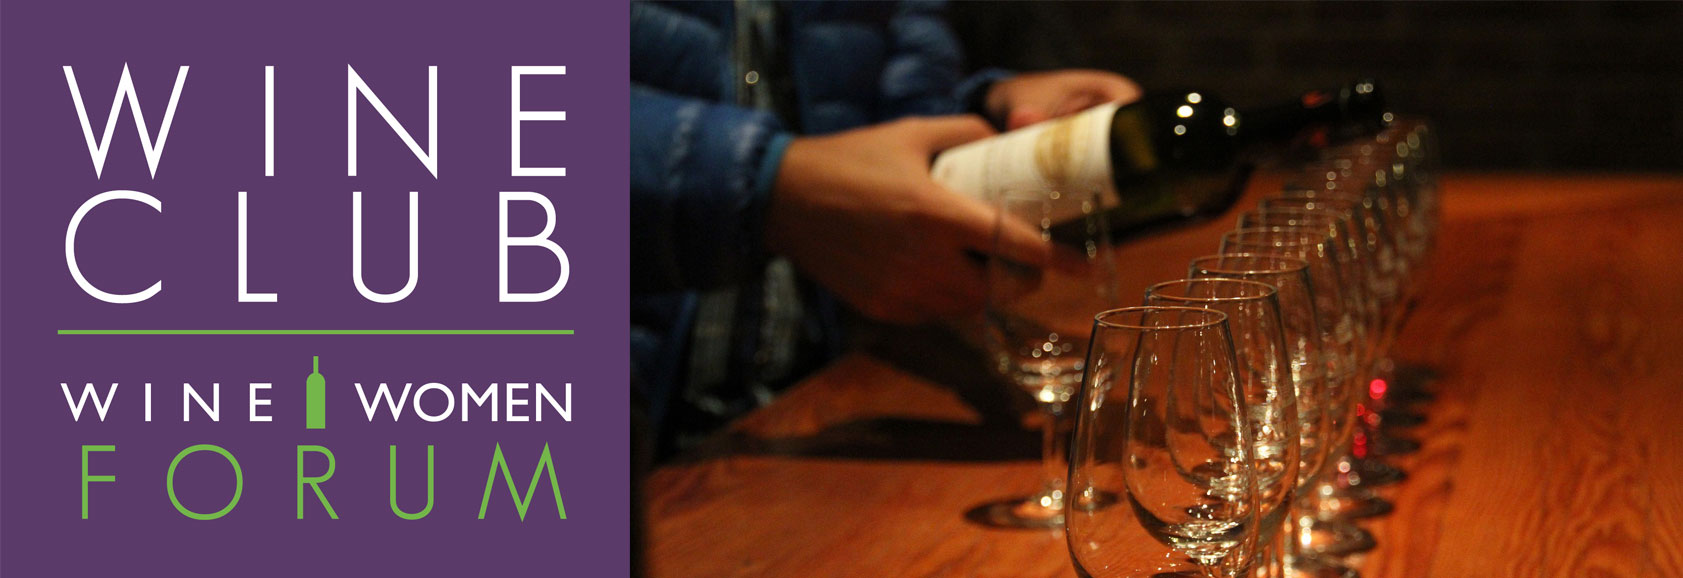 Wine Club Forum Banner with Flight of wine glasses